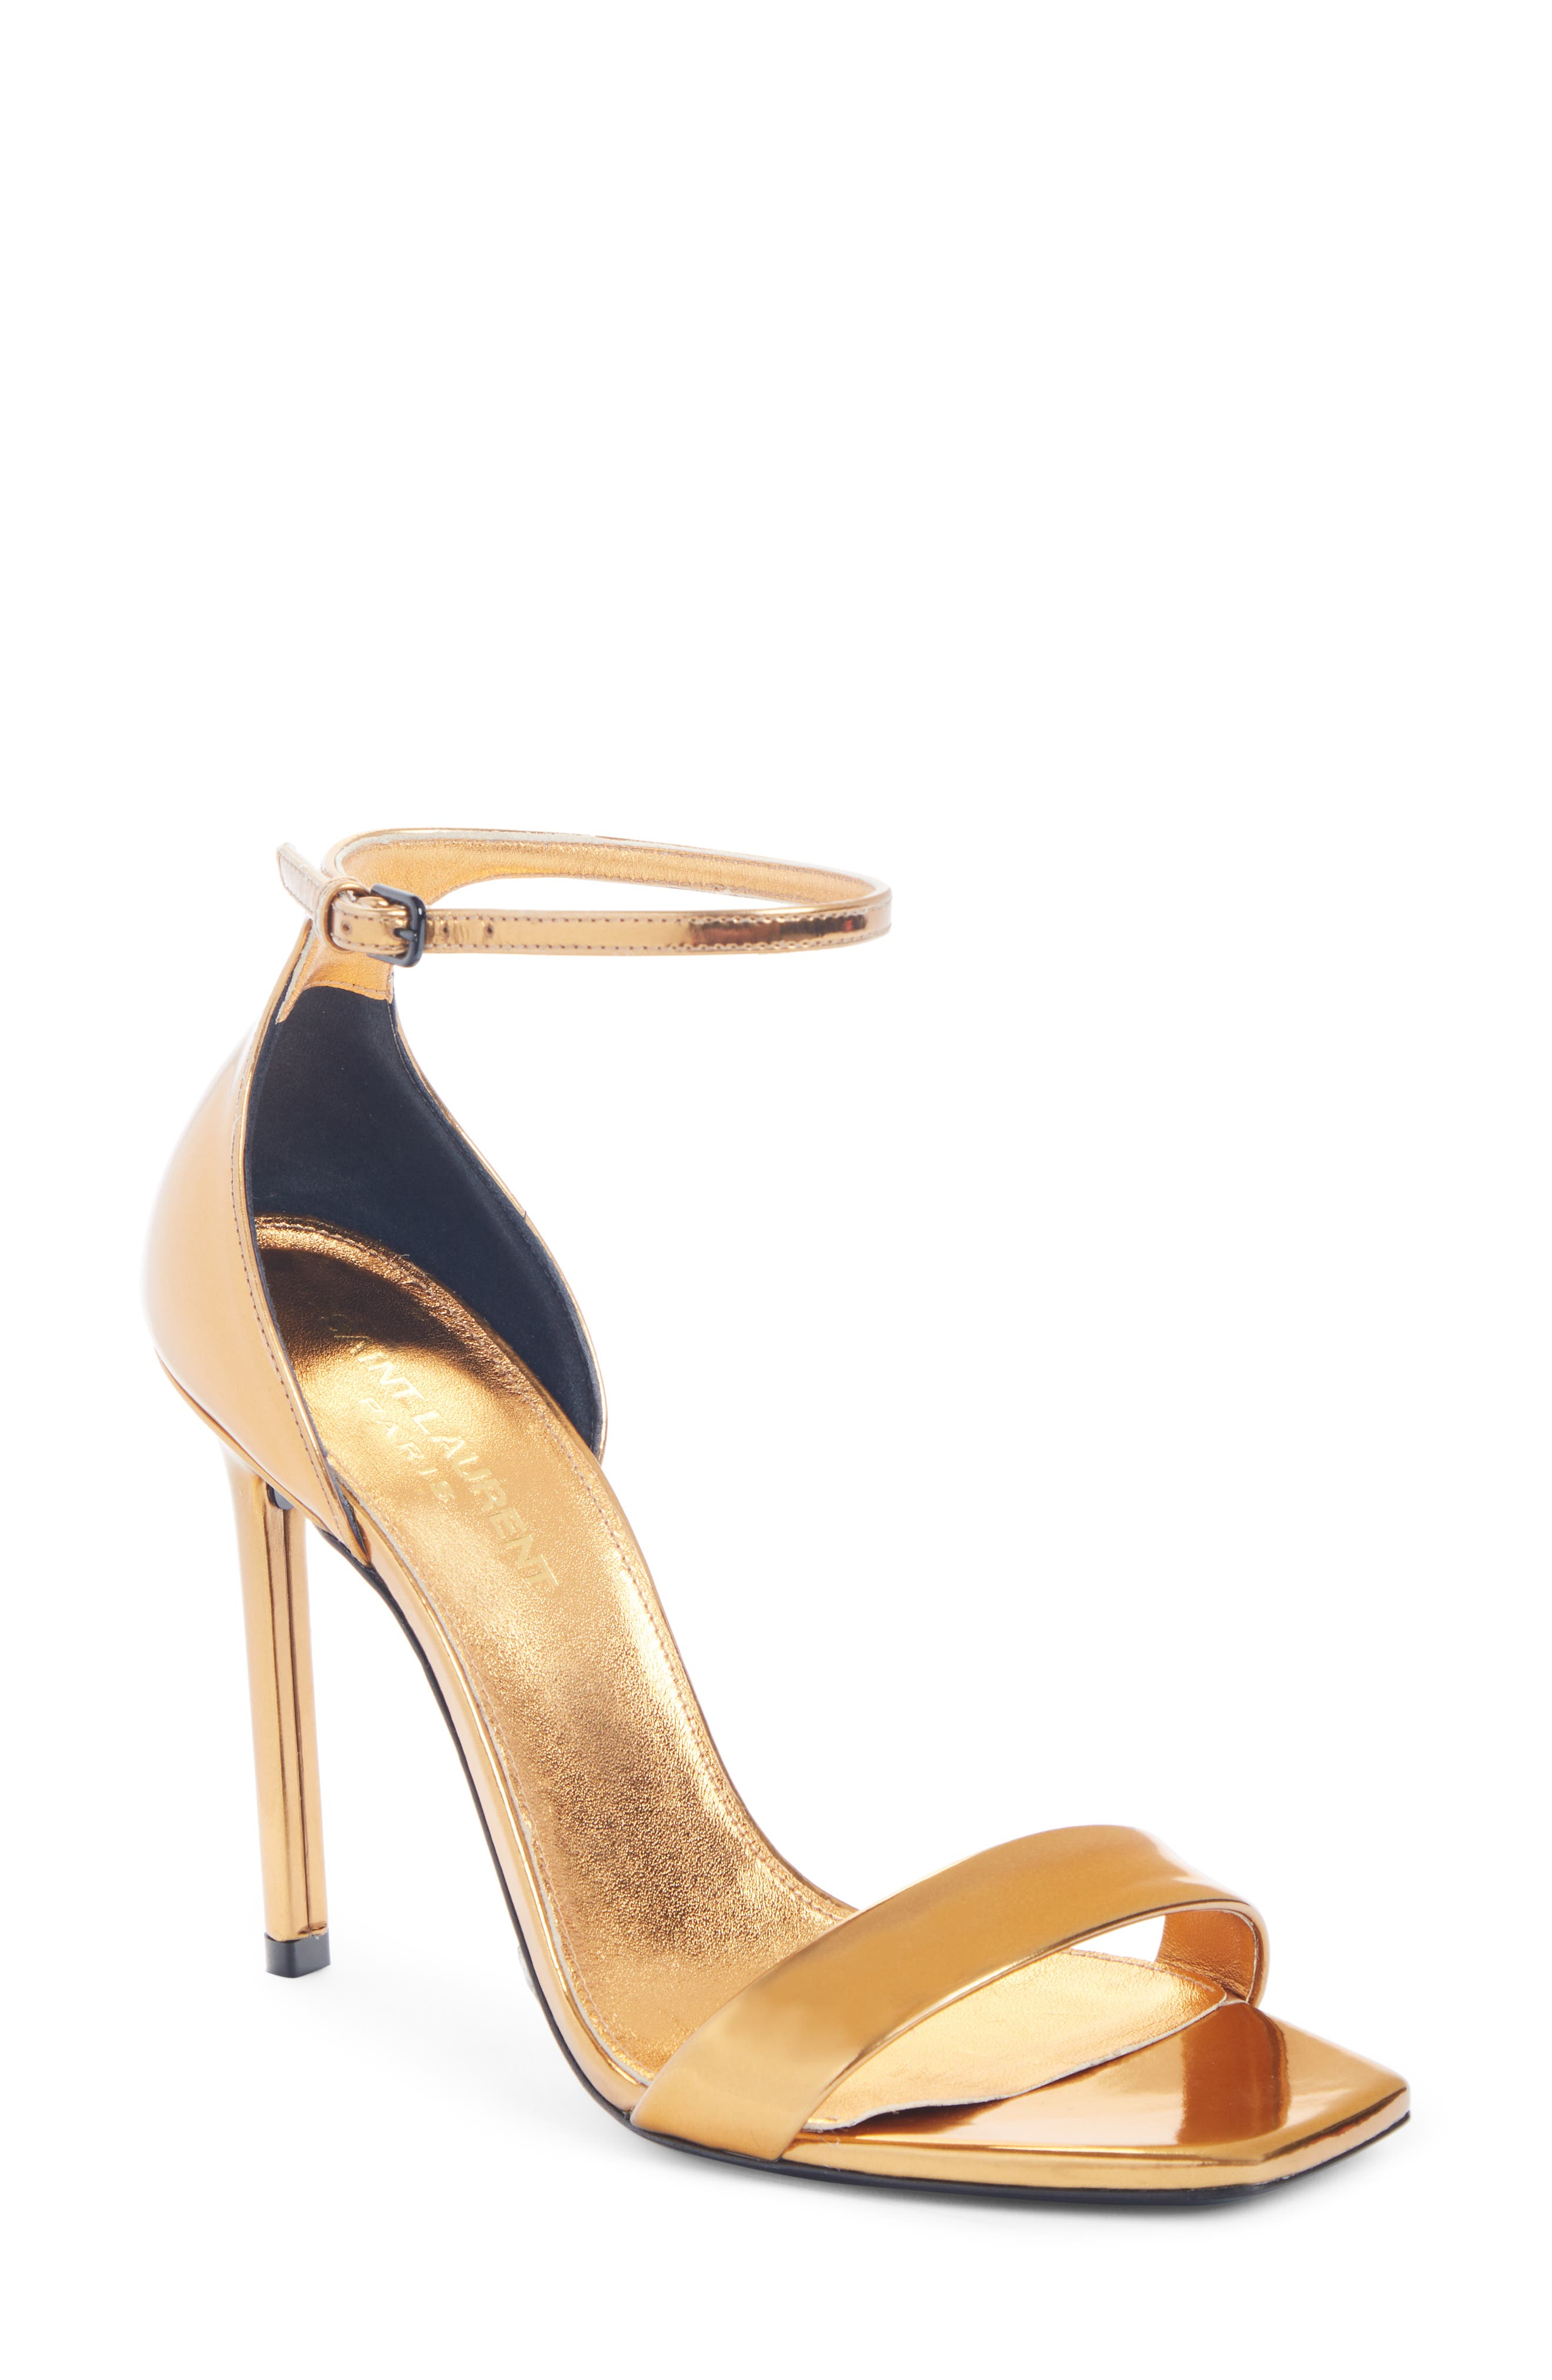 A sharply blunted toe and a slender, curvy halo strap frame a sandal done in metallic polish with a towering stiletto providing formidable lift. Style Name: Saint Laurent Amber Metallic Sandal (Women). Style Number: 5952506 1. Available in stores.